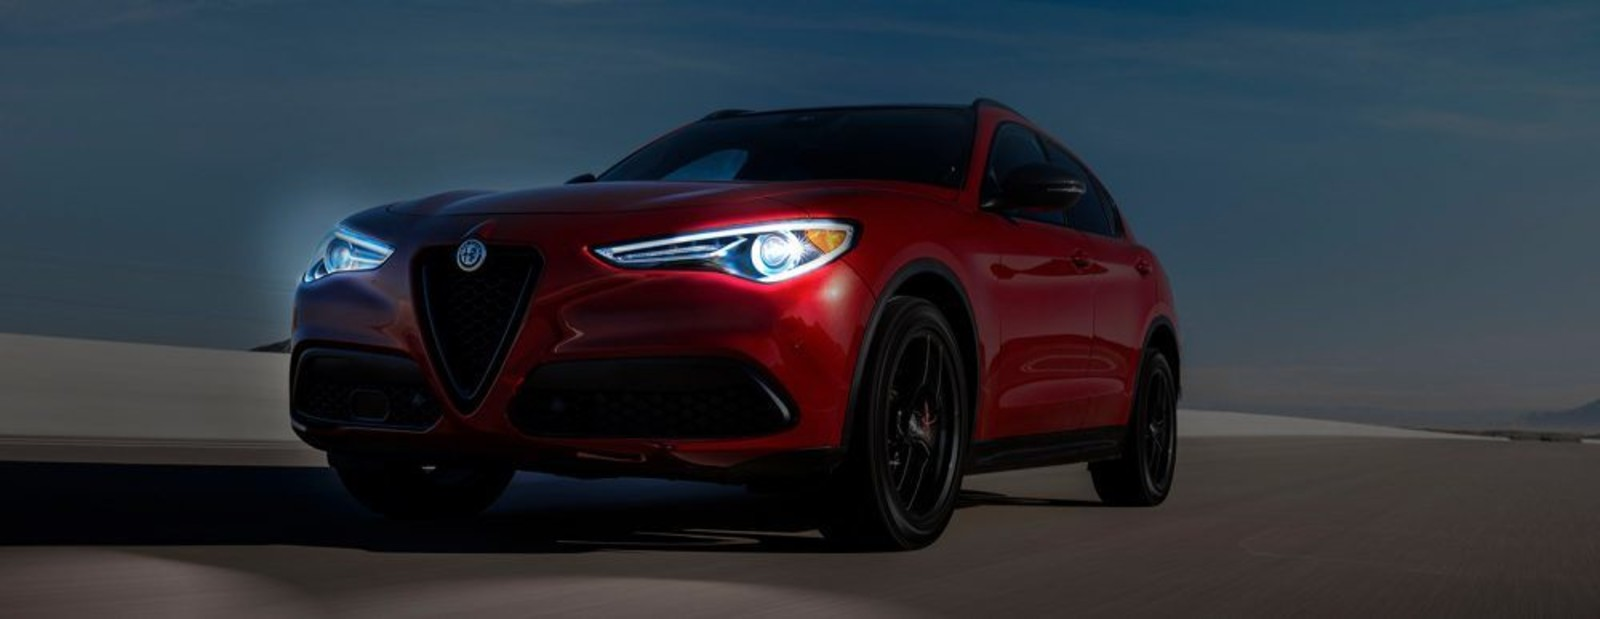 2019-AlfaRomeo-VLP-Stelvio-Headlamps-Night